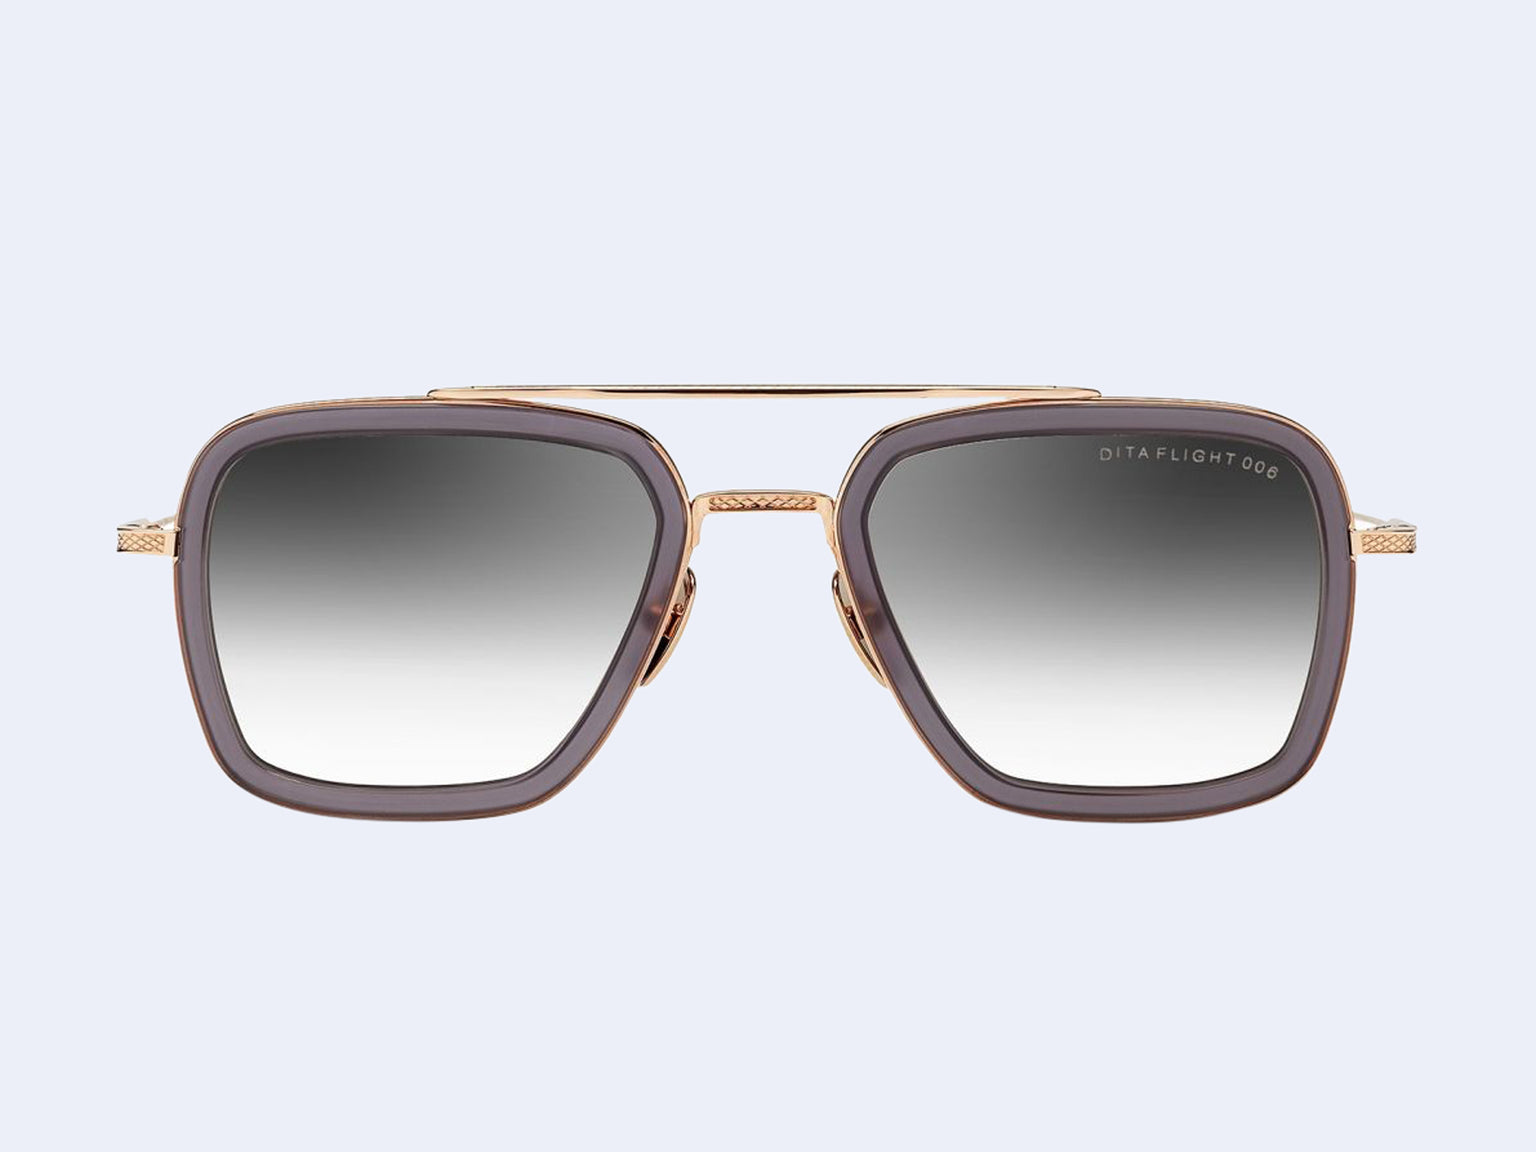 DITA Flight 006 (Gold-Grey with Grey Gradient Lens)